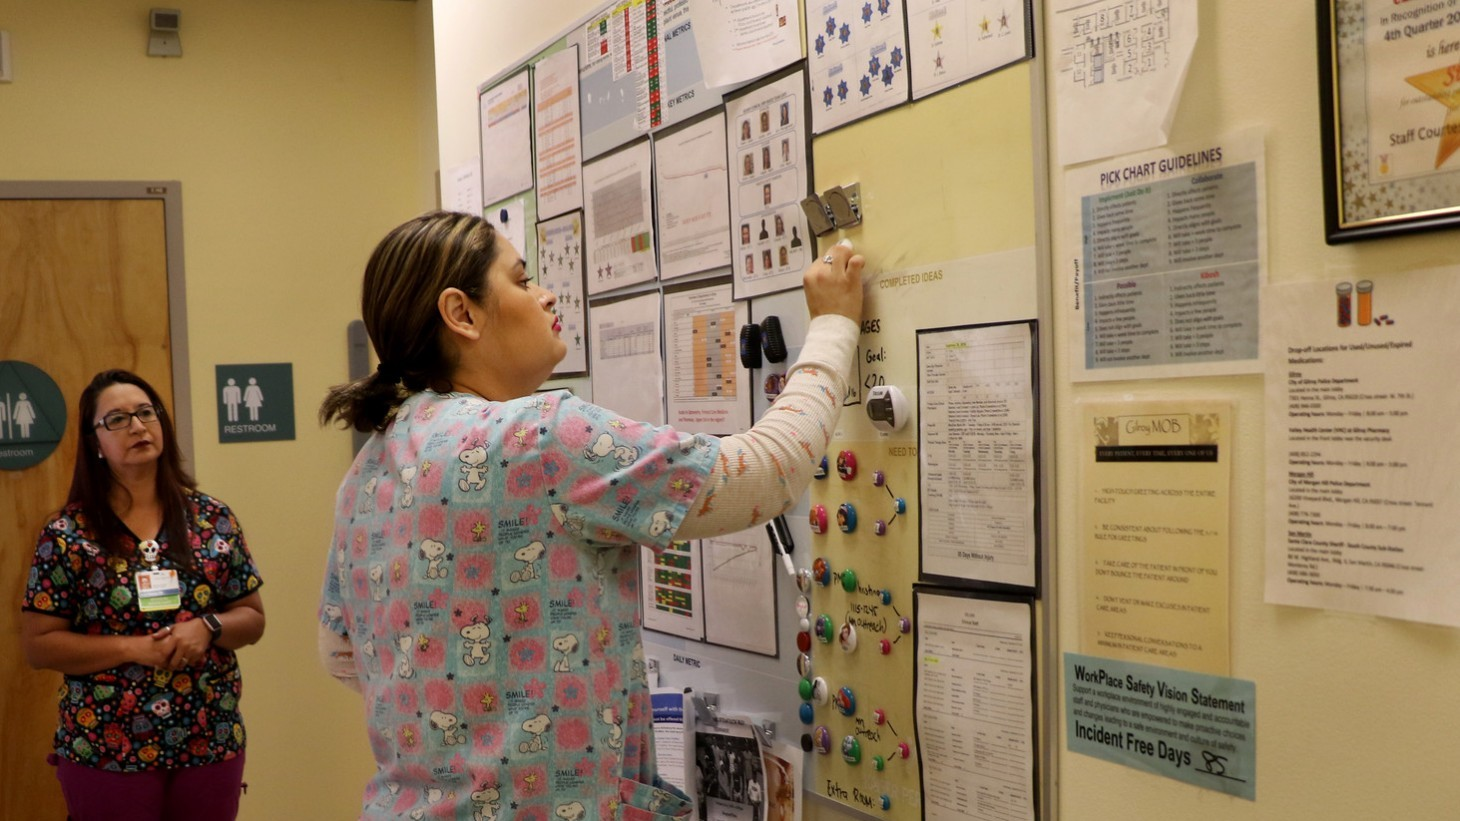 A team member records data on a visual board